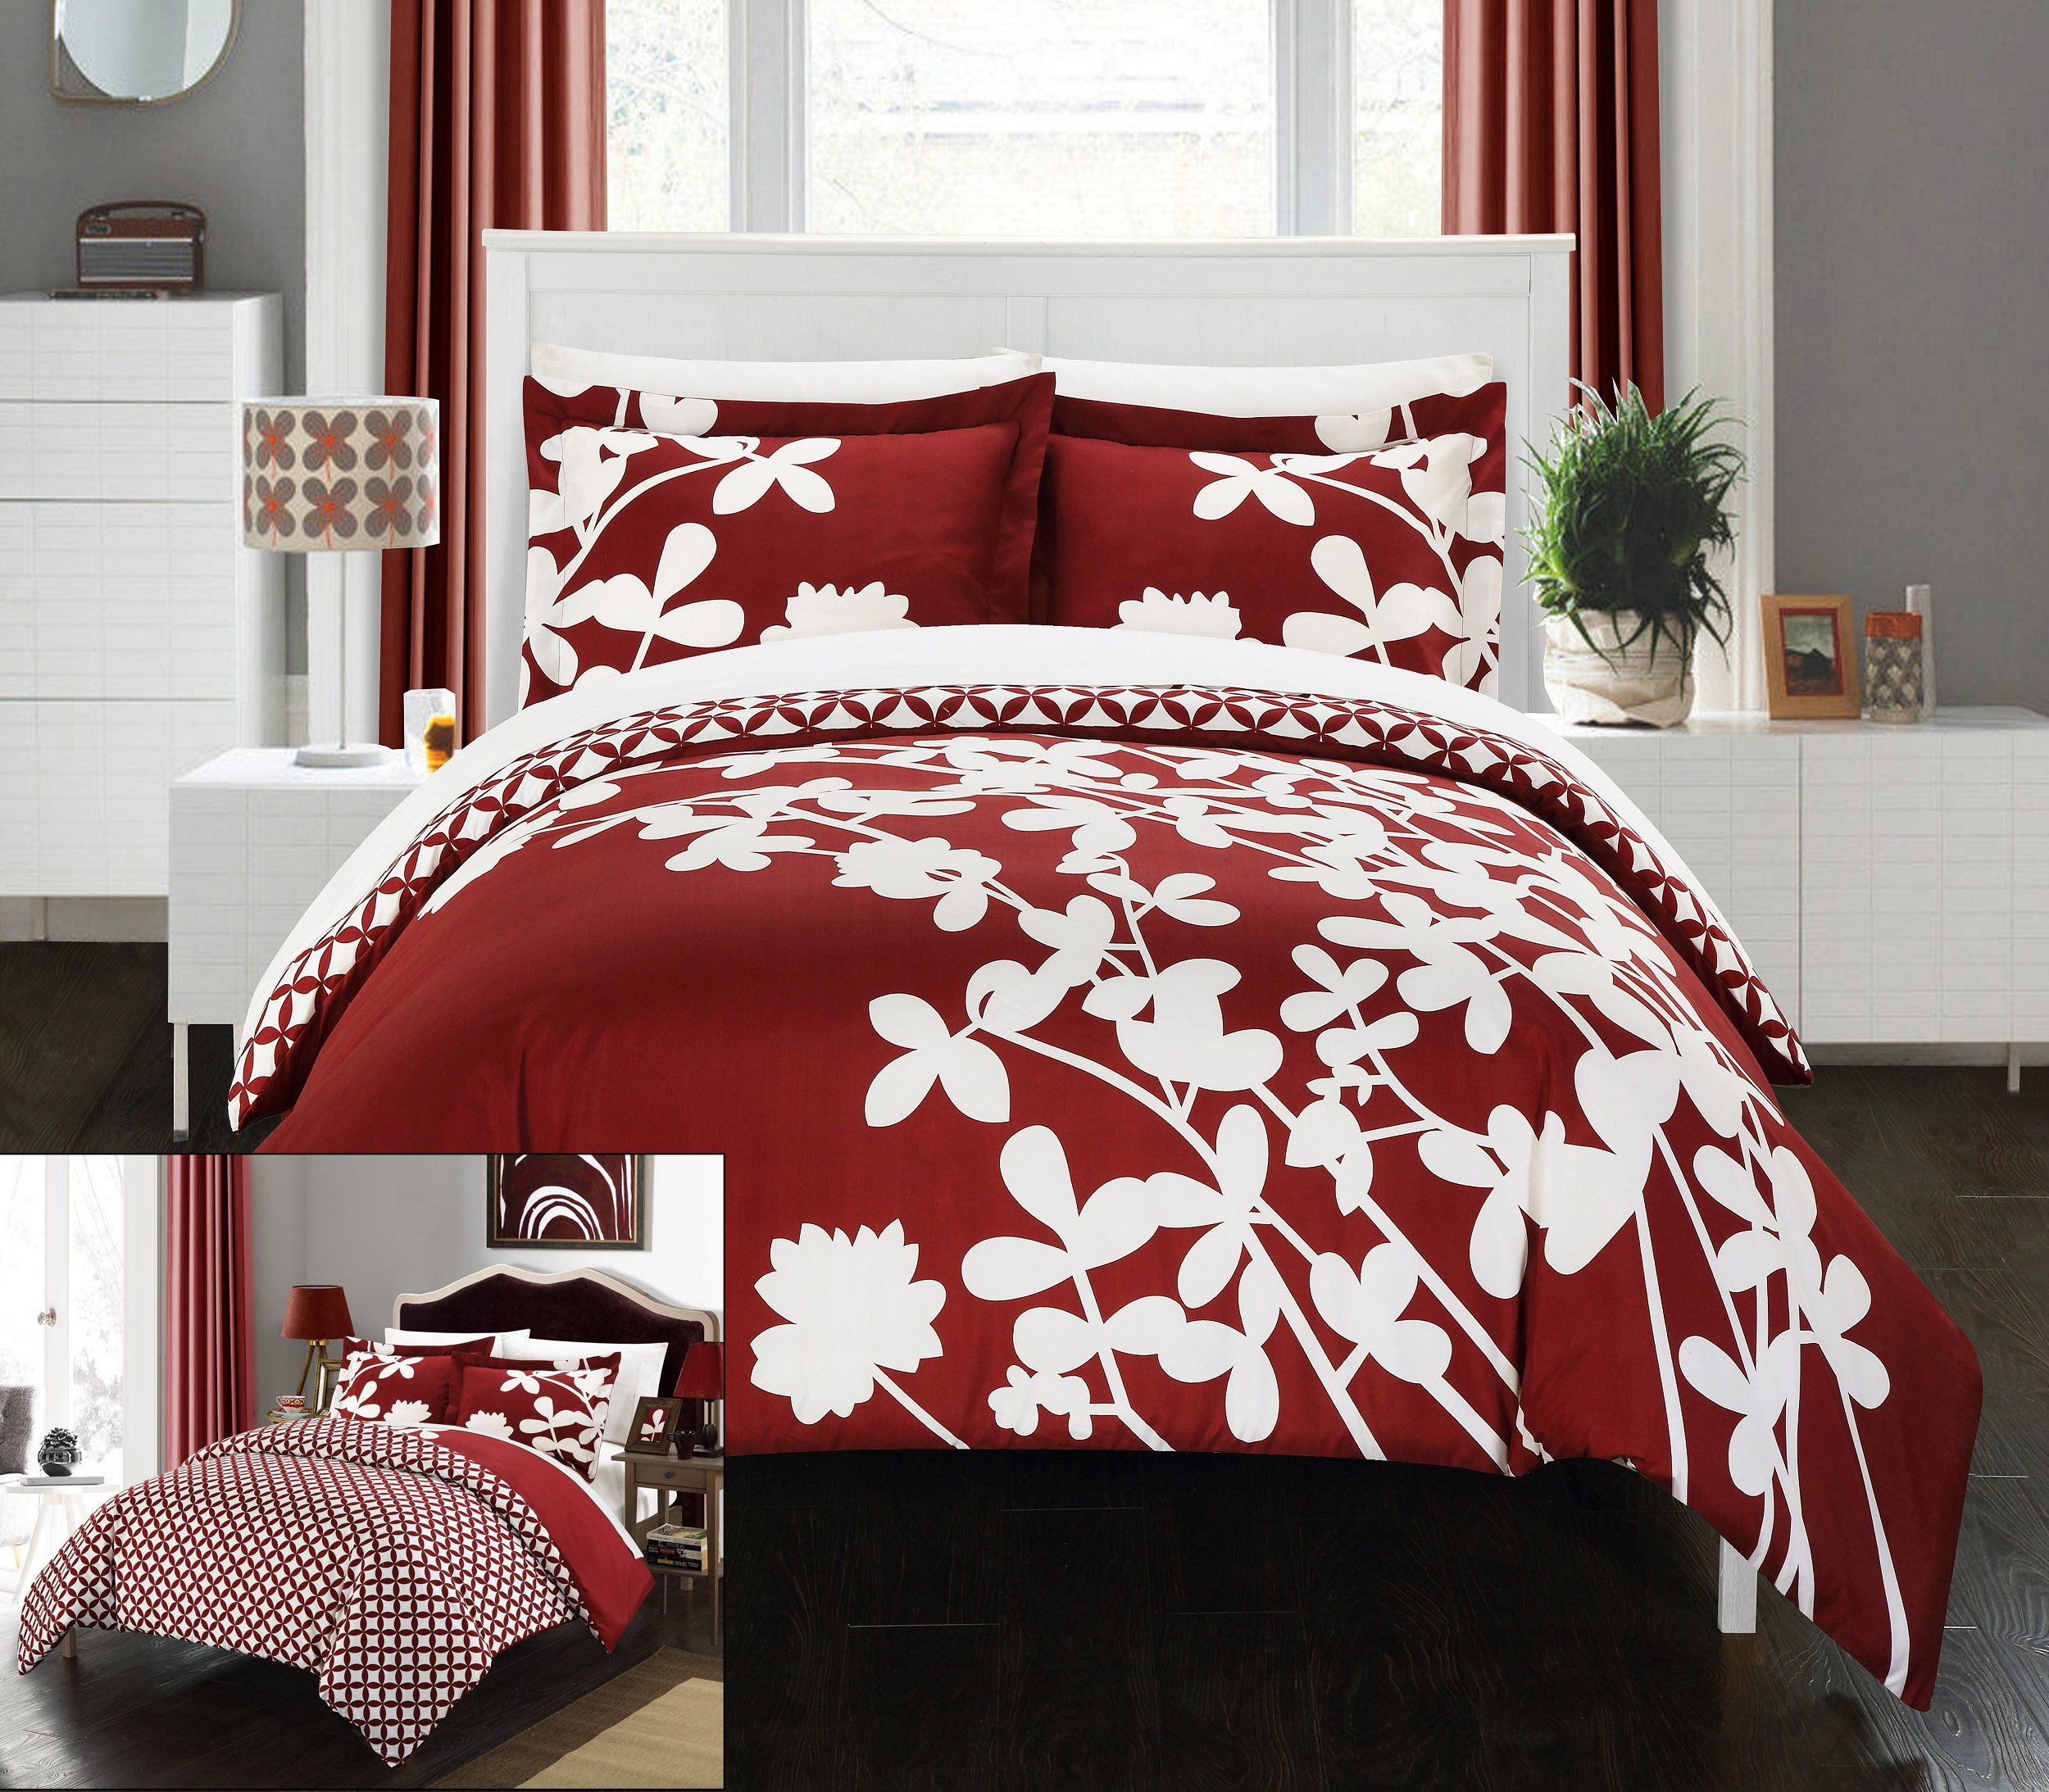 Chic Home 7 Piece Calla Lily Reversible large scale floral design printed with diamond pattern reverse King Duvet Cover Set Red With sheet set by Chic Home